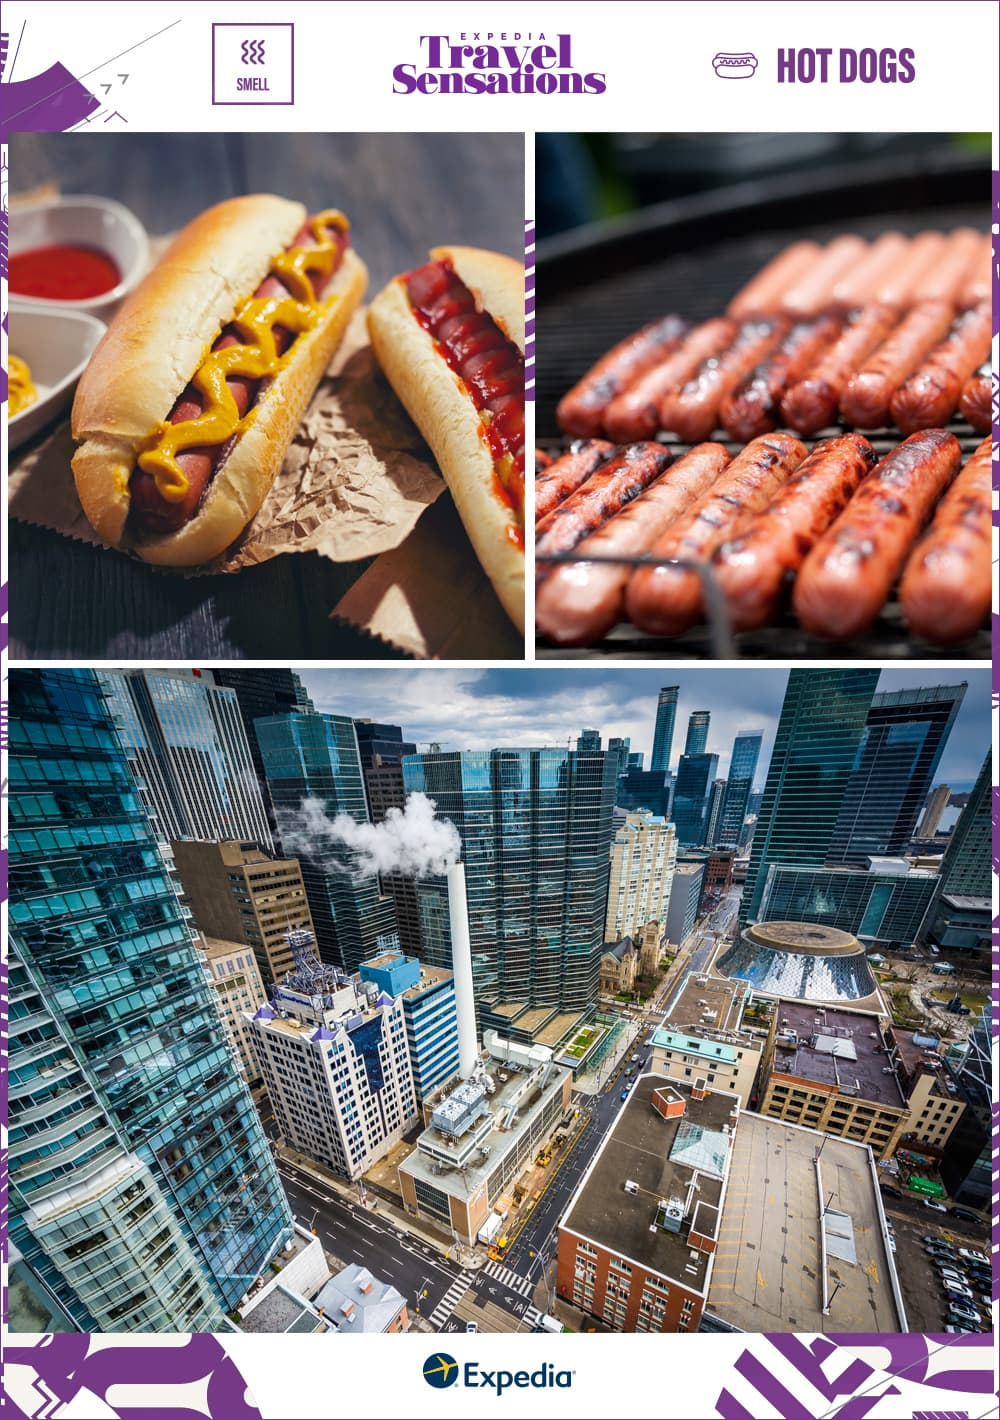 grilling hot dogs in Canada